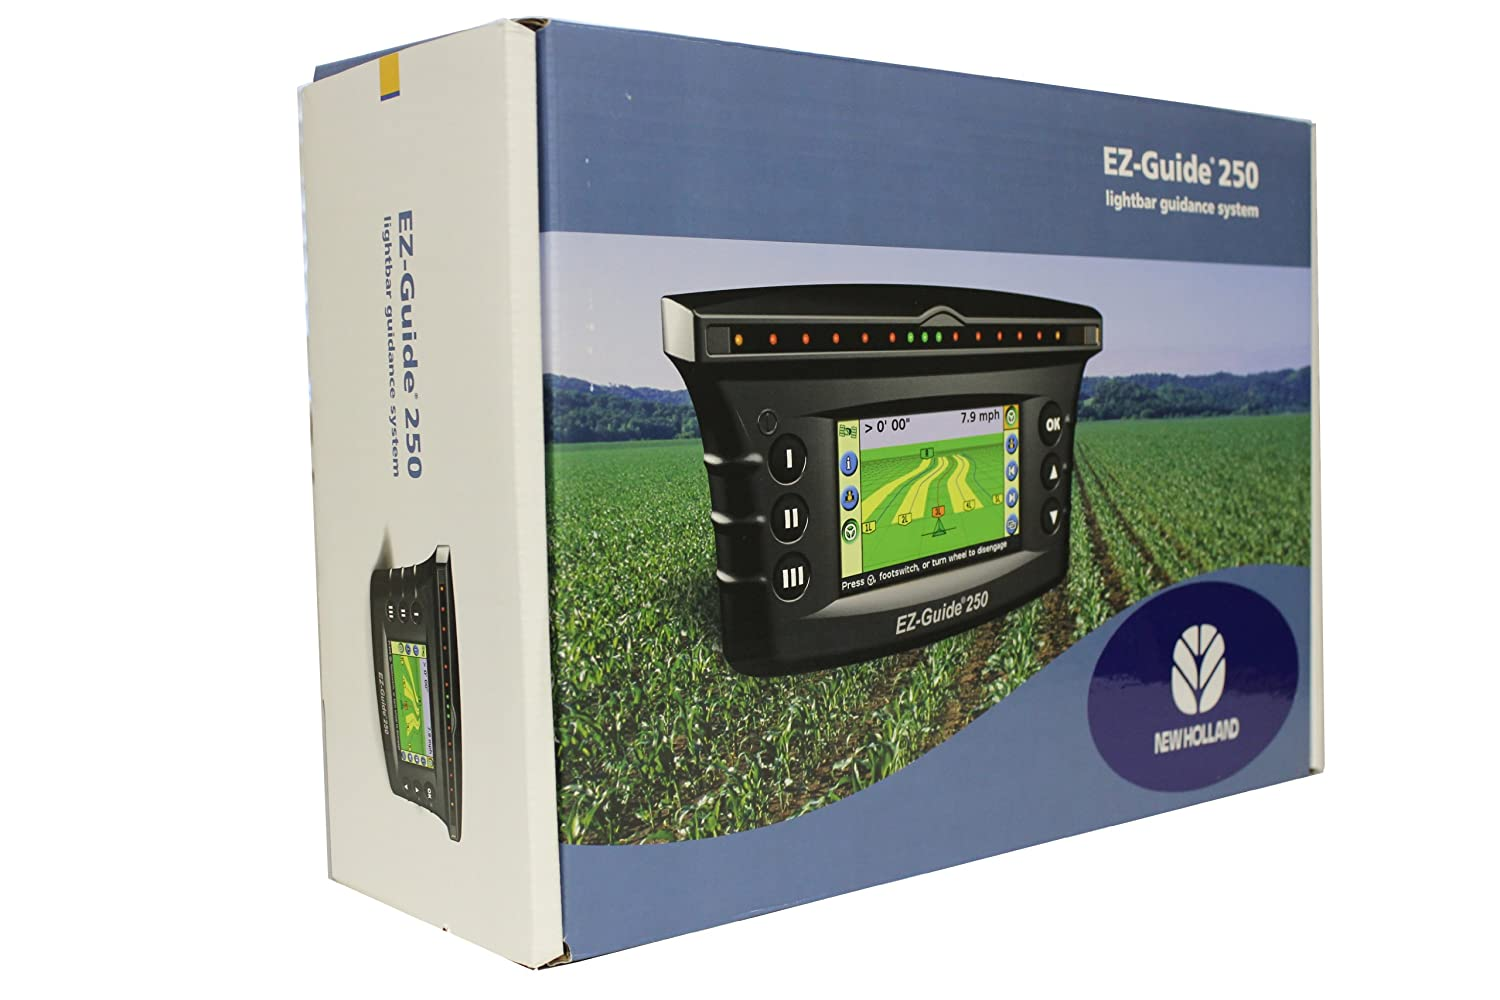 Amazon trimble ez guide 250 ztn92000 60 cell phones amazon trimble ez guide 250 ztn92000 60 cell phones accessories sciox Images